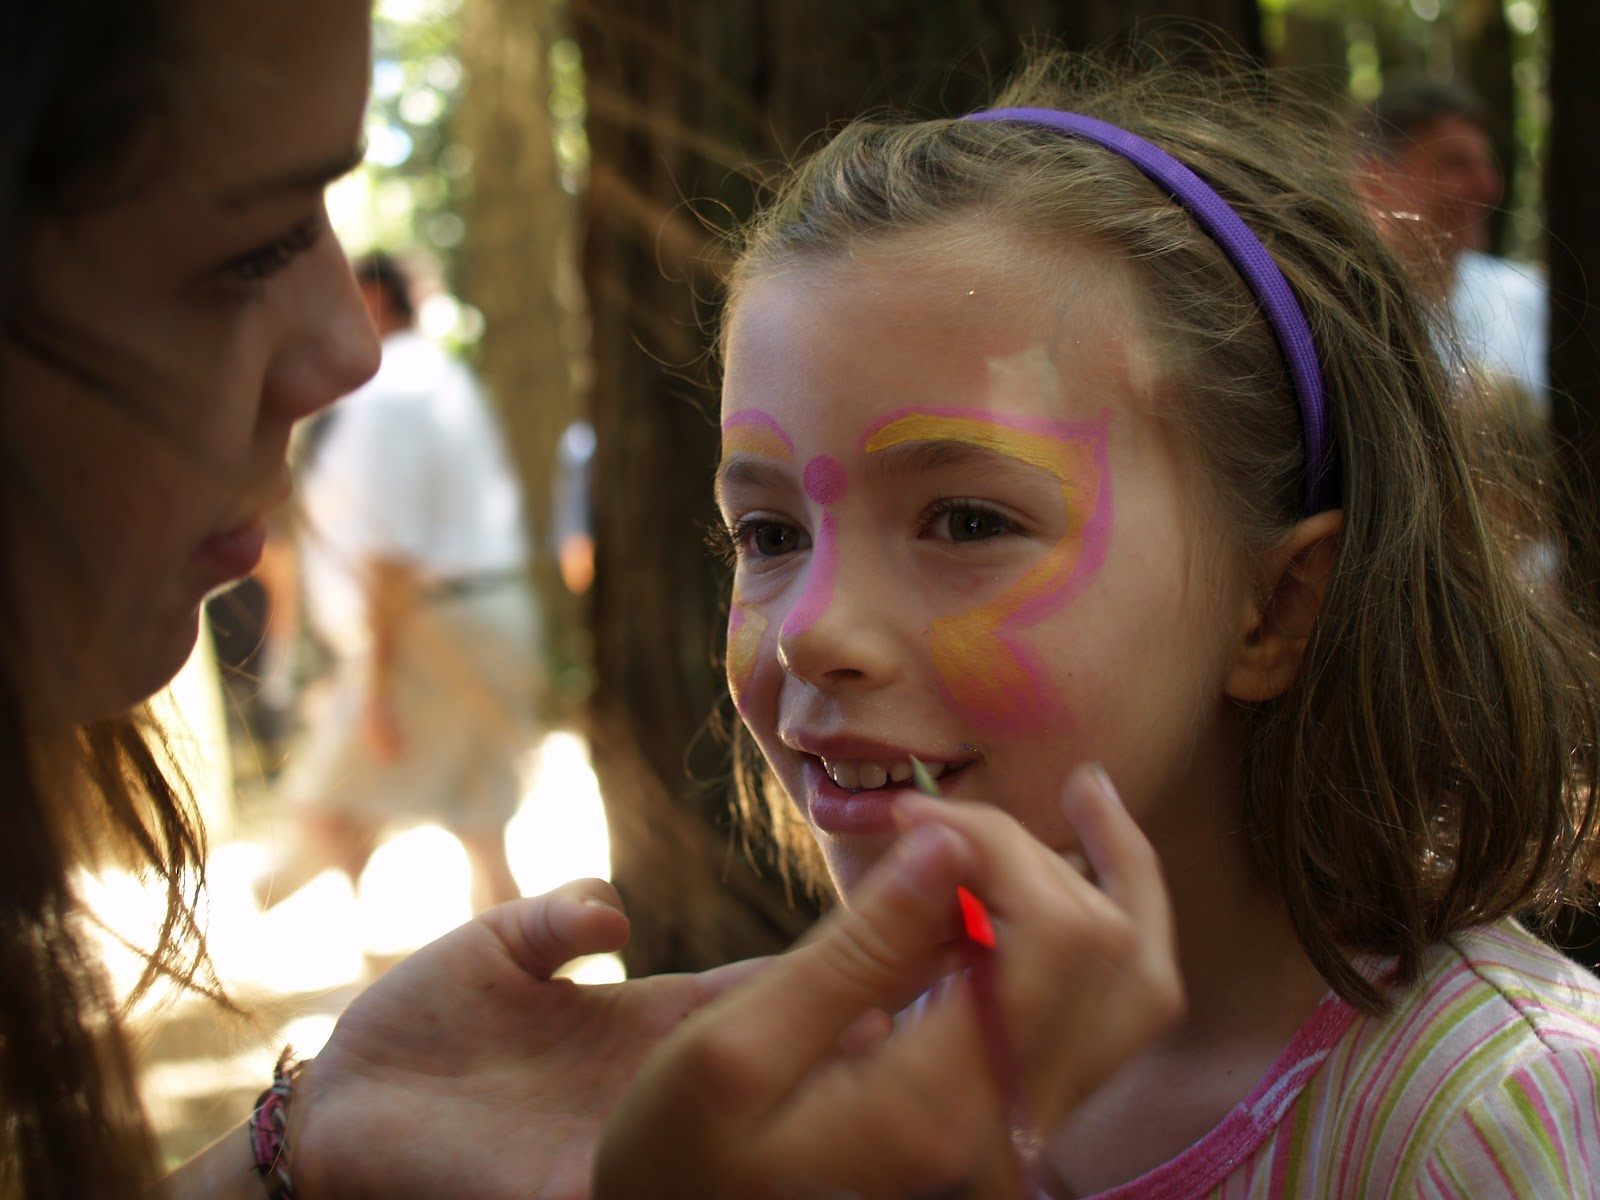 Face Paint and Face Paint Safety | School Paints and Painting